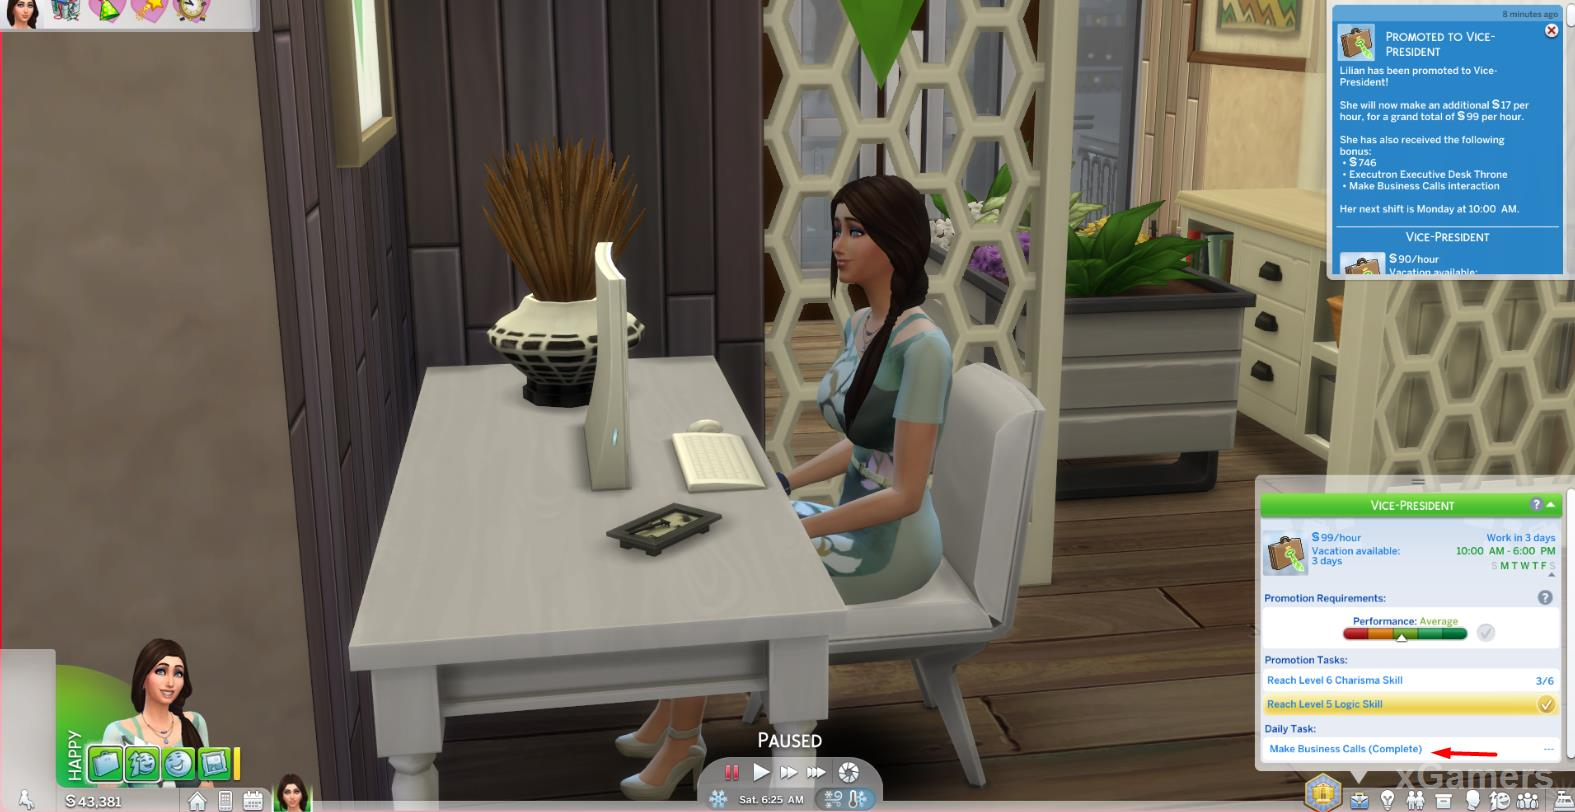 The Sims 4 Business Career: Vice-President